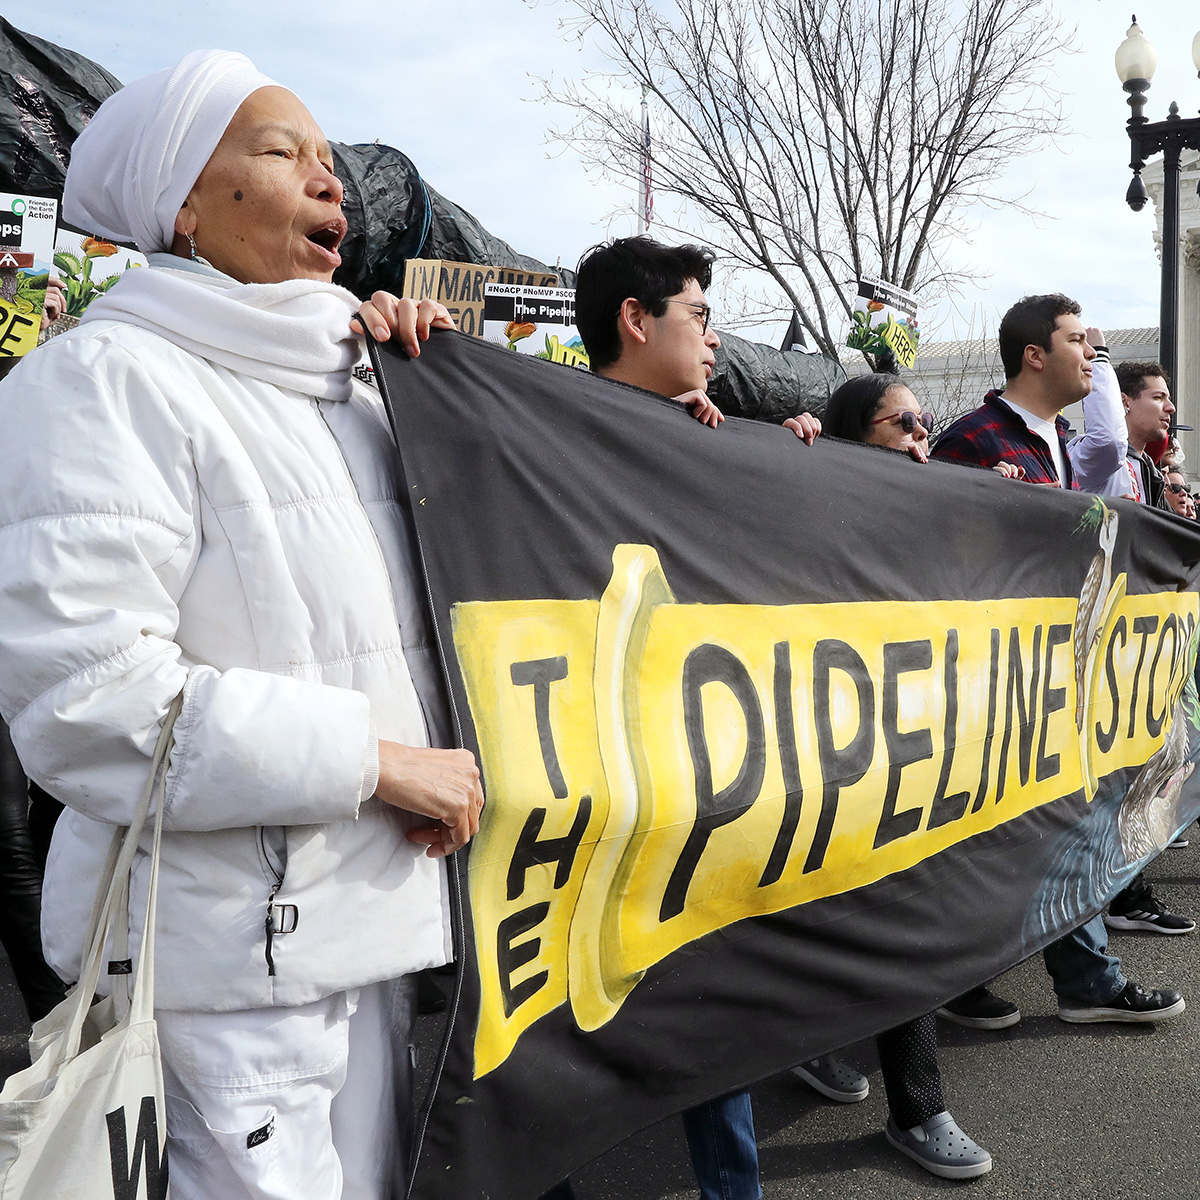 Activists speak out at the U.S. Supreme Court, as oral arguments are heard on Feb. 24, 2020, in the Atlantic Coast Pipeline case.